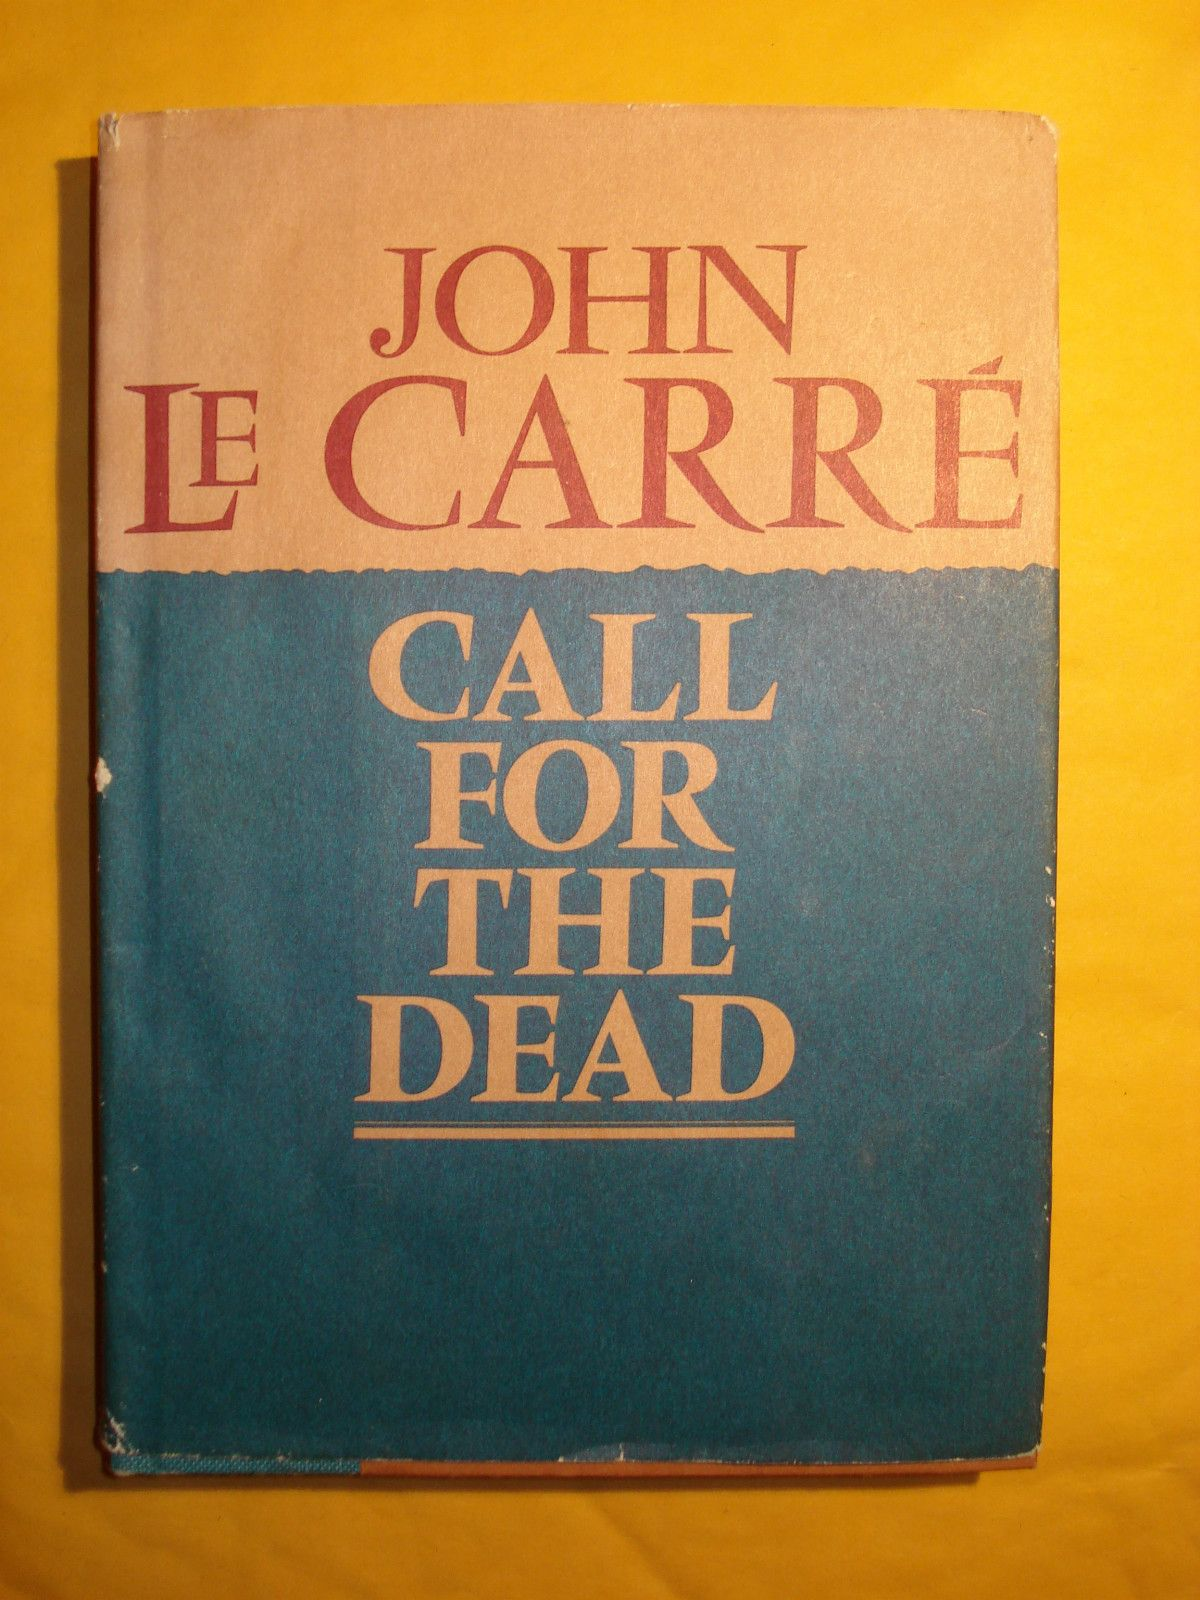 Call for the Dead, John Le Carre' 1961 HC/DJ 1st American